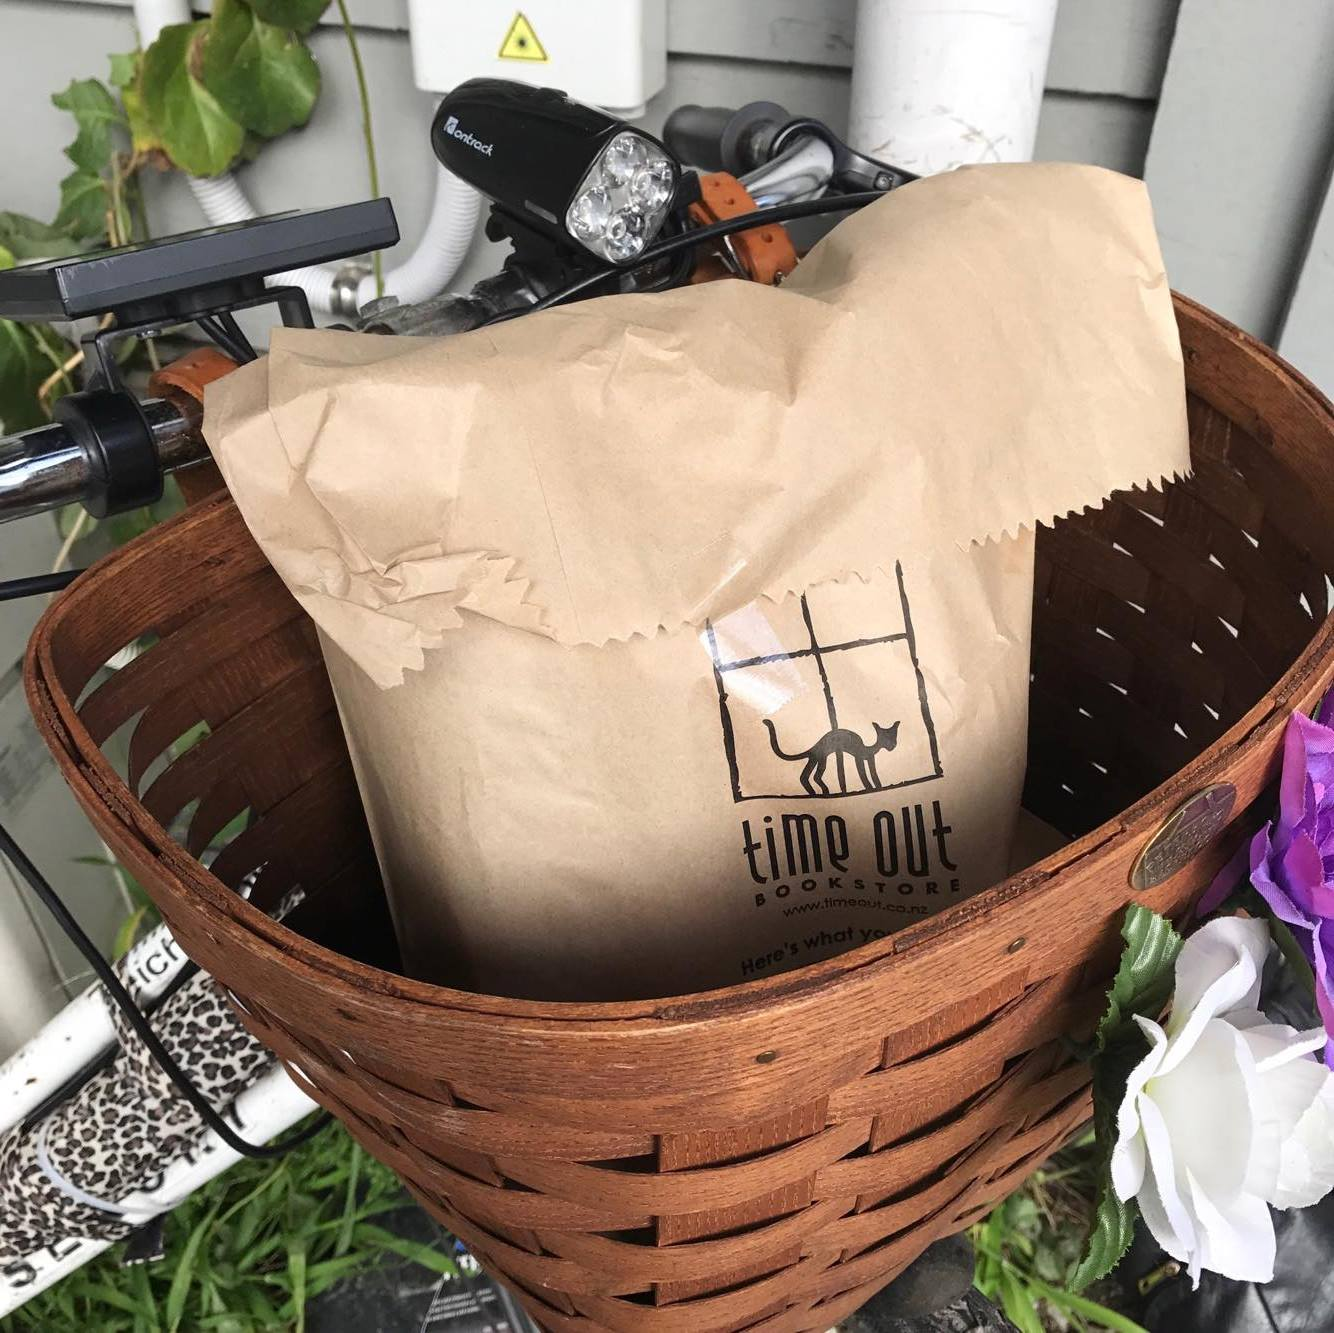 10.              - MT EDEN DELIVERY: If it's convenient for staff, we are able to hand deliver items on the way home from work.